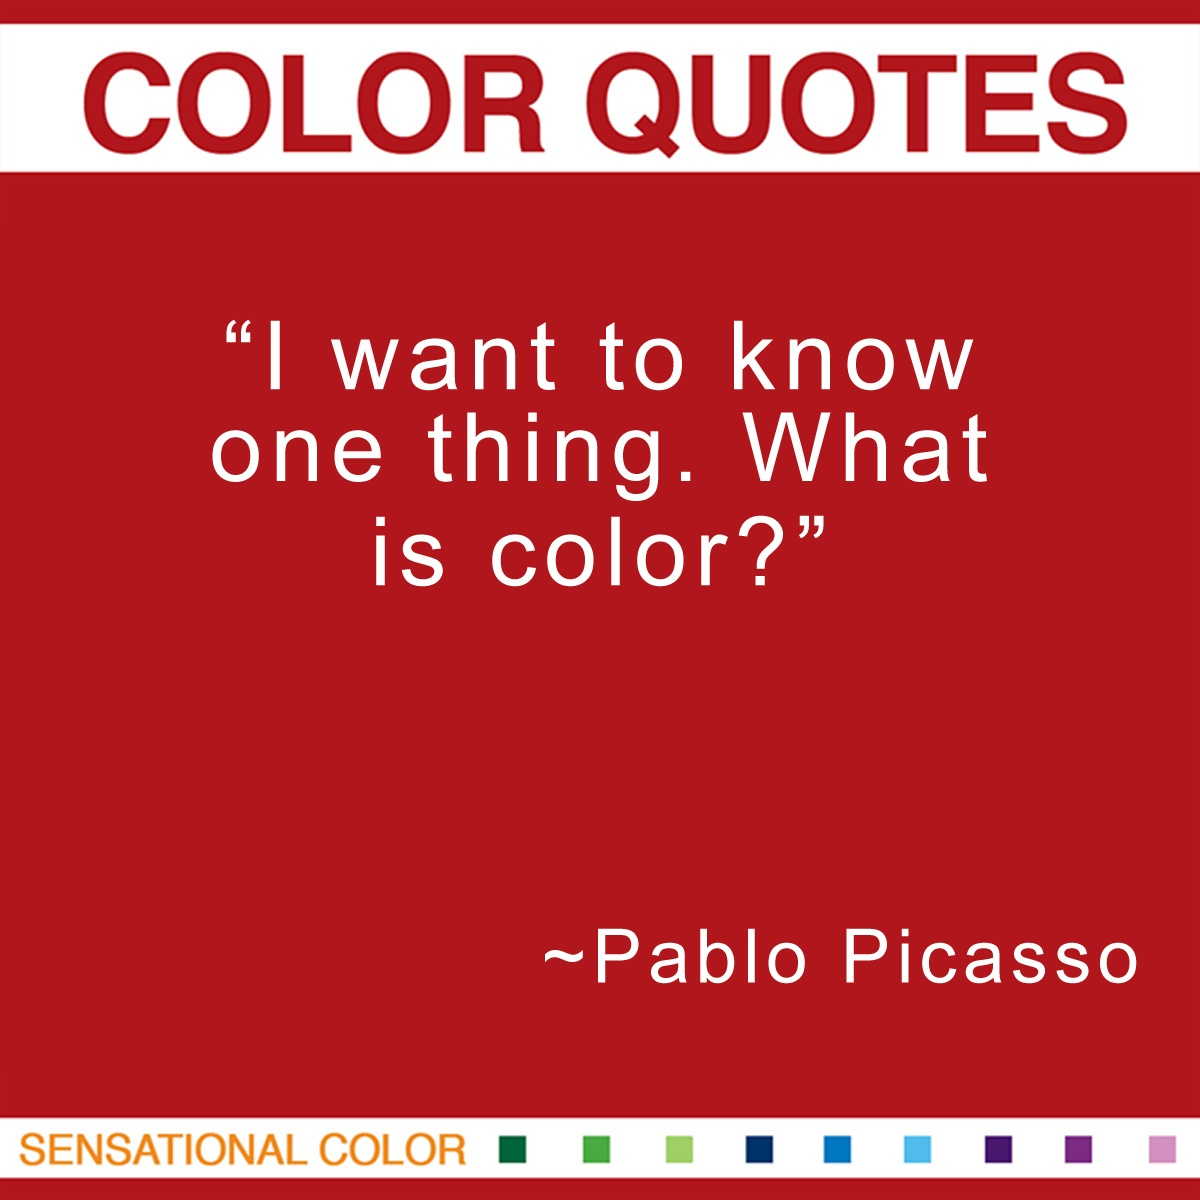 """I want to know one thing. What is color?"" - Pablo Picasso"